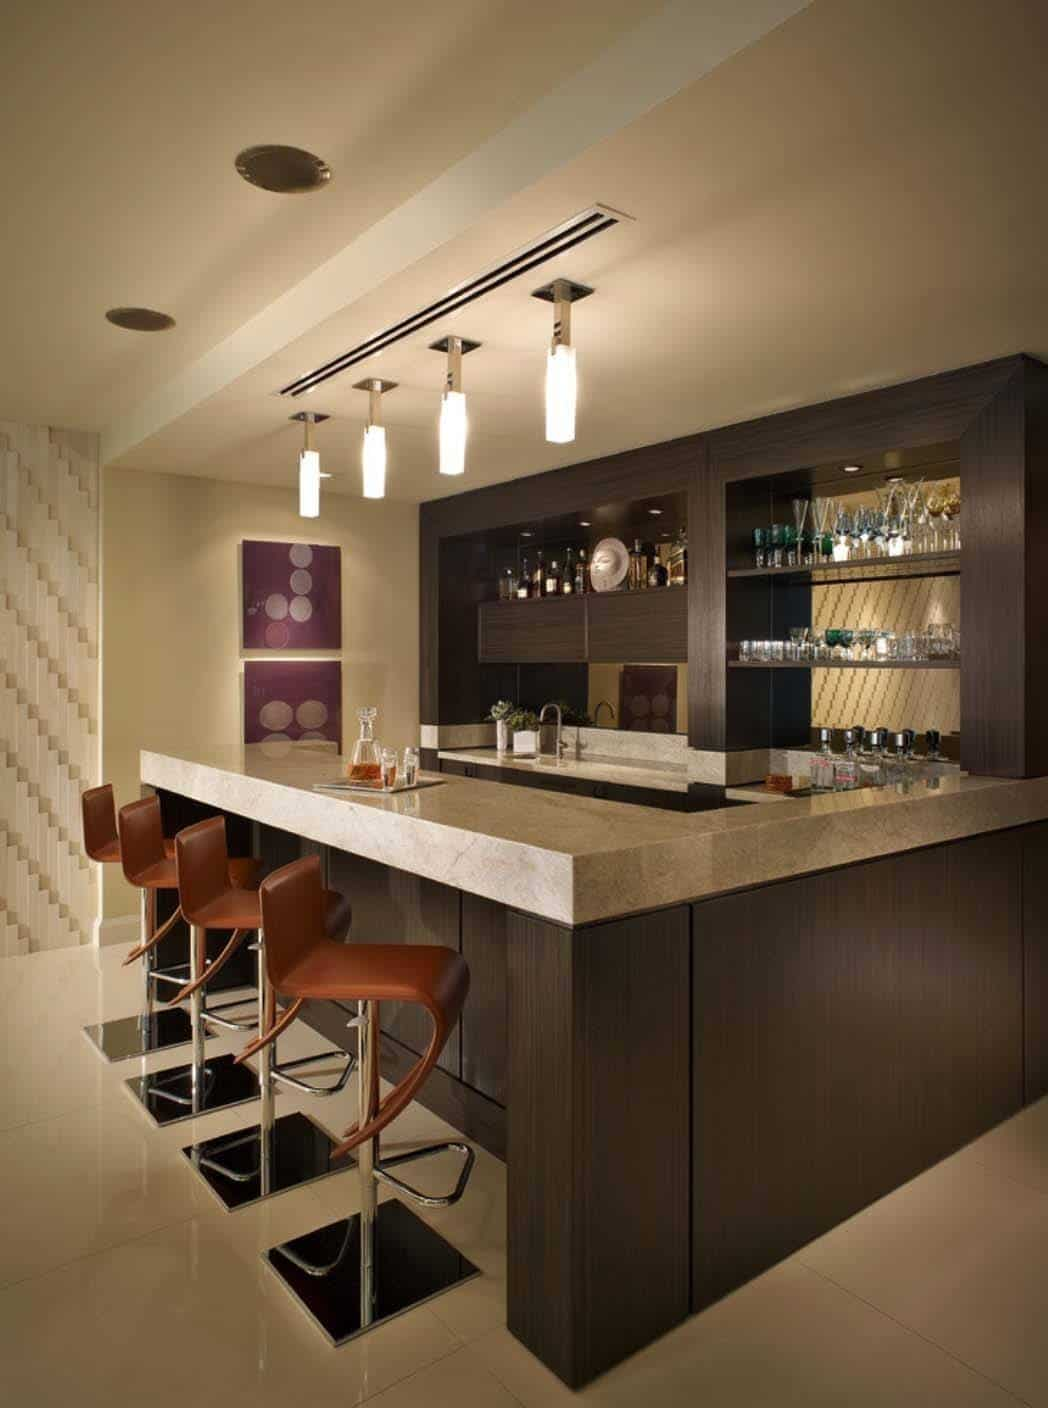 Contemporary Residence-Interiors by Steven G-11-1 Kindesign